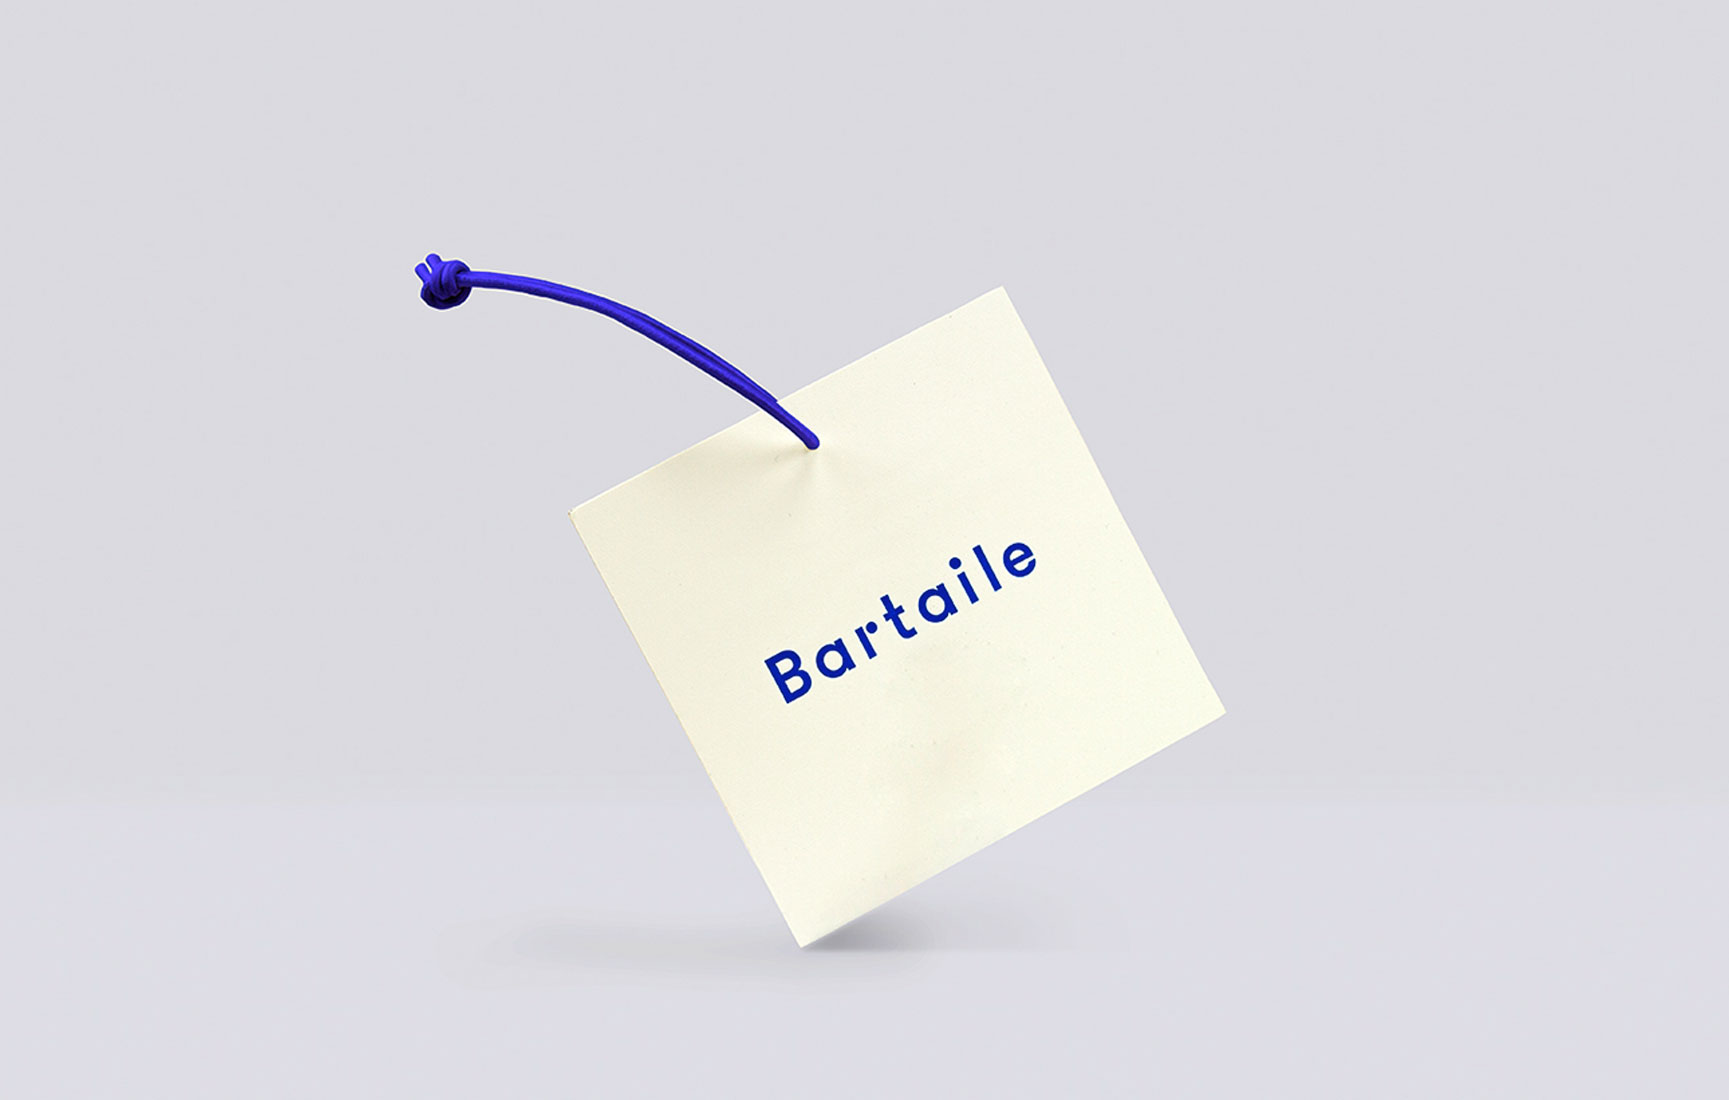 bartaile_work_02